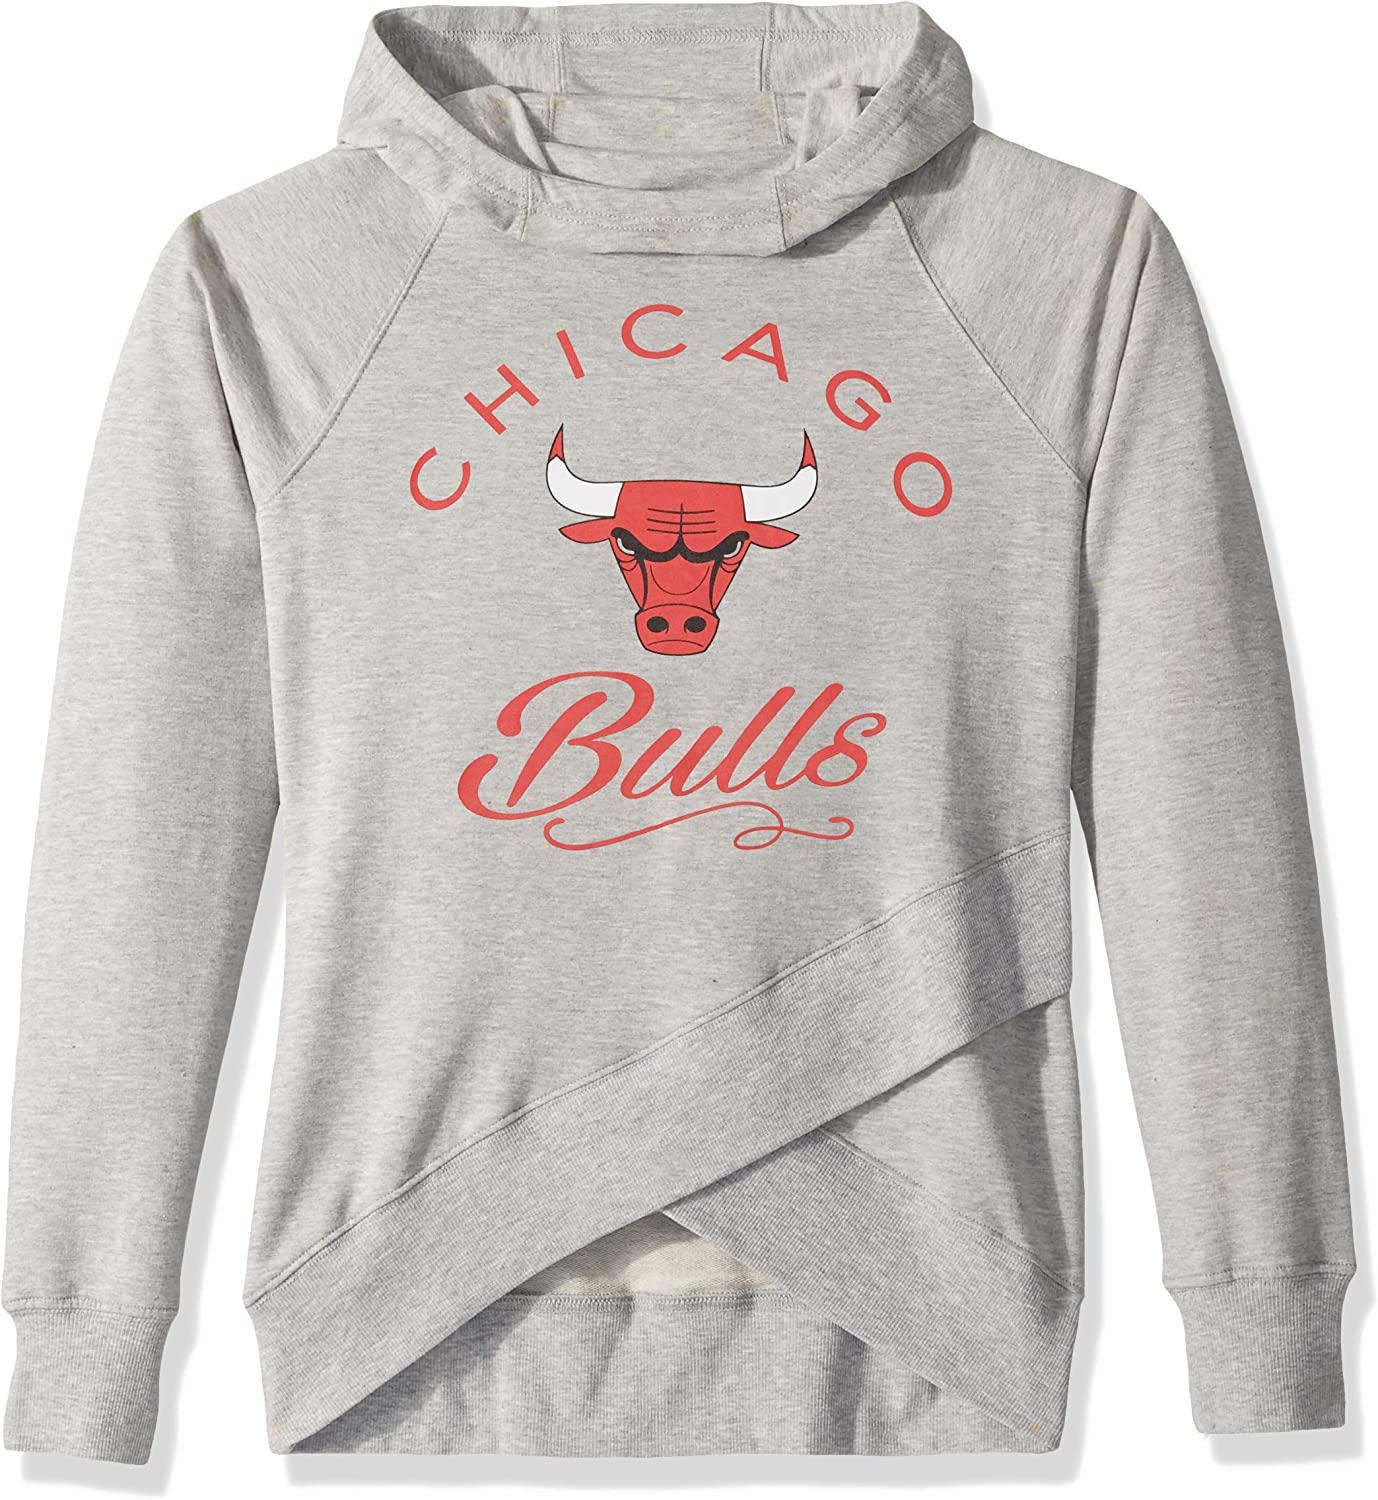 Youth Large Heather Grey 14 NBA by Outerstuff NBA Youth Girls Chicago Bulls The Bridge Long Sleeve Funnel Neck Hoodie